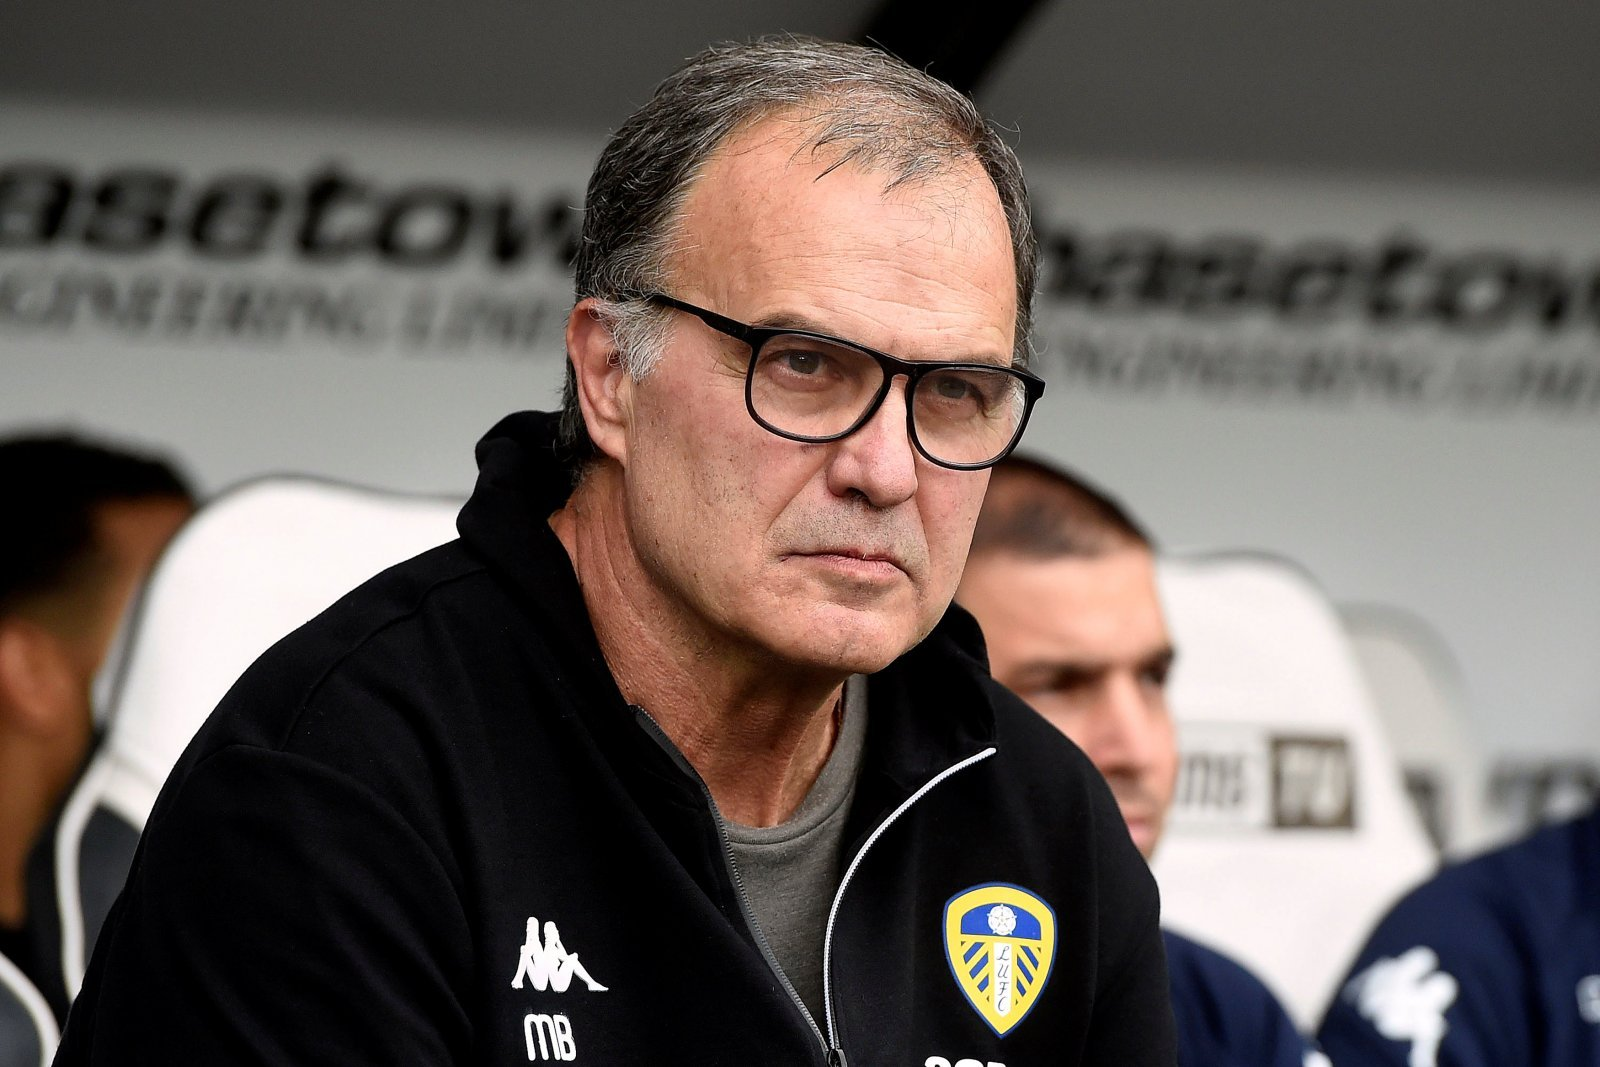 Leeds United: Bielsa's side cannot afford to get carried away after weekend win